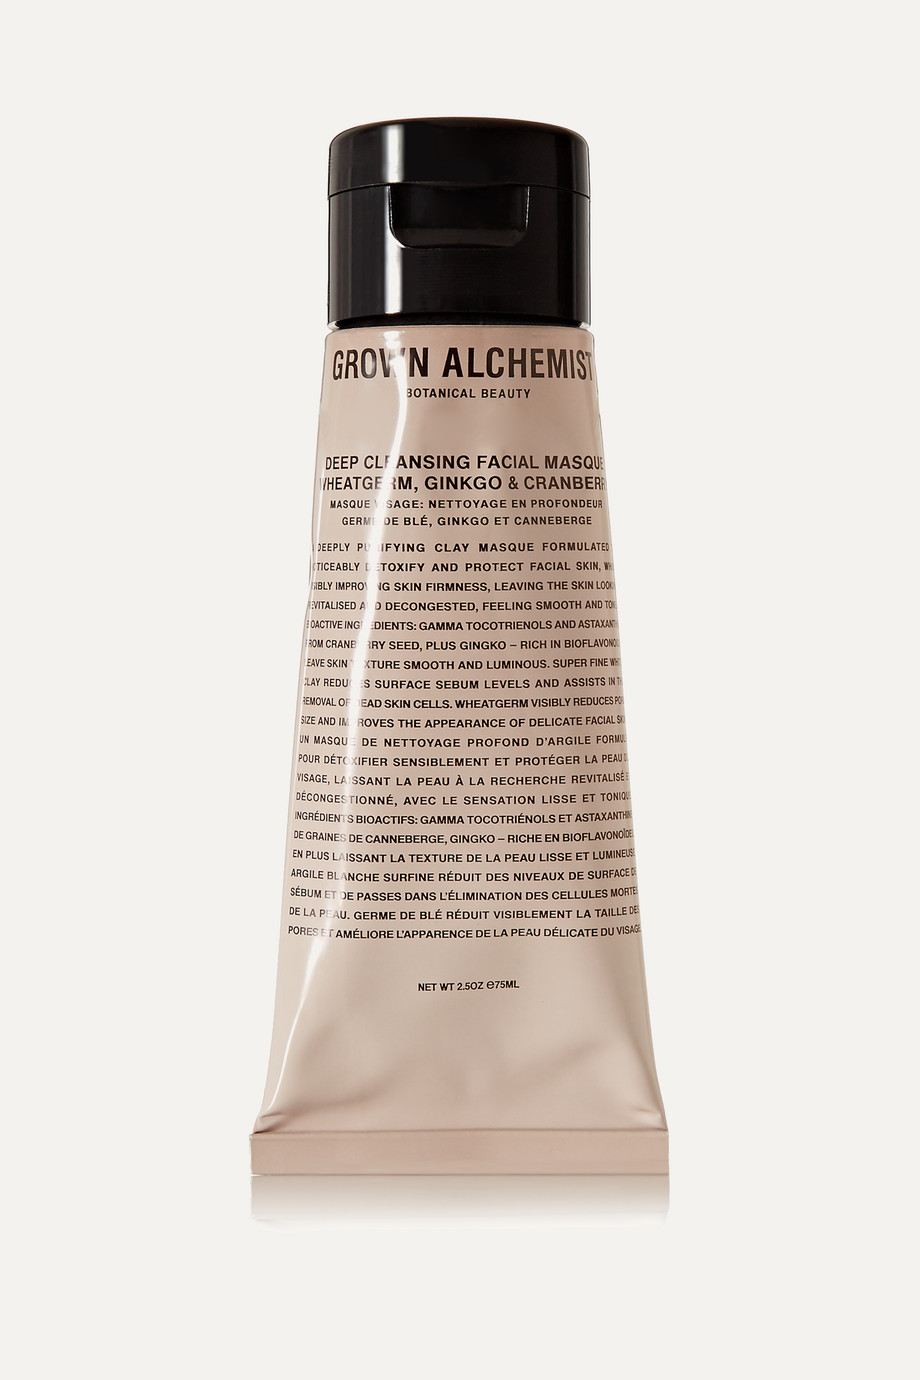 GROWN ALCHEMIST Deep Cleansing Facial Masque, 75ml